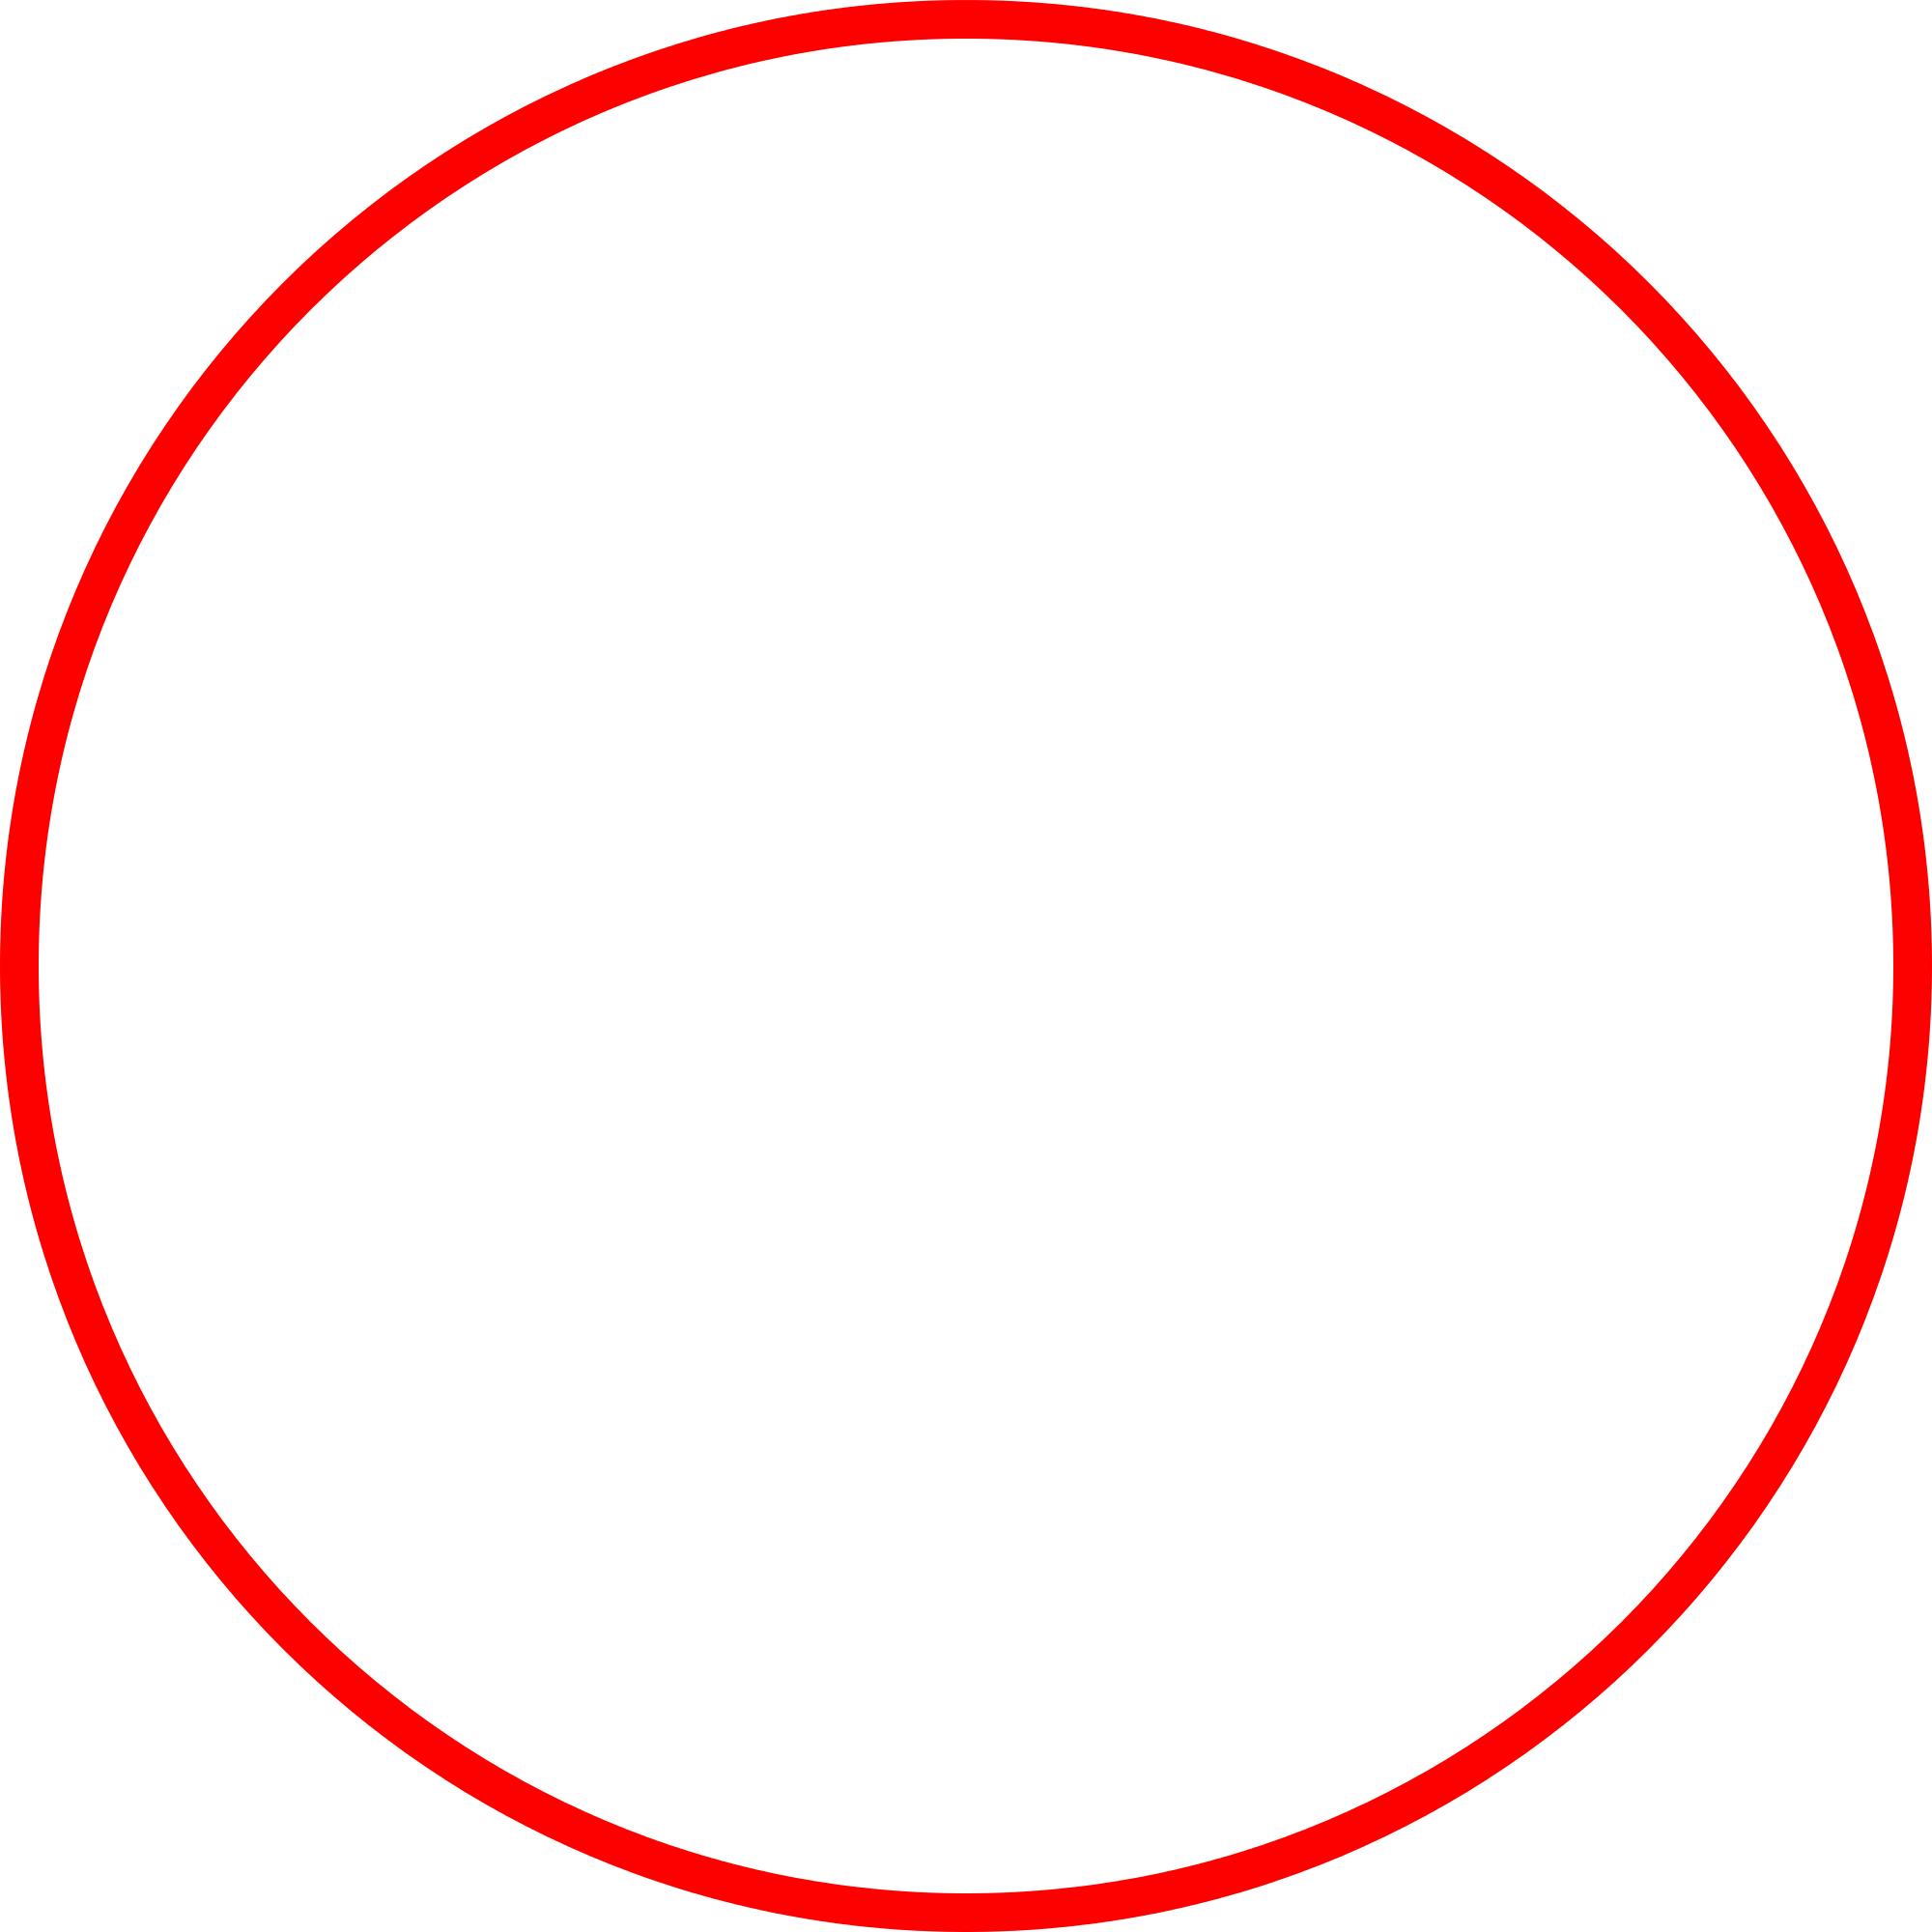 Outline circle png. Images transparent free download